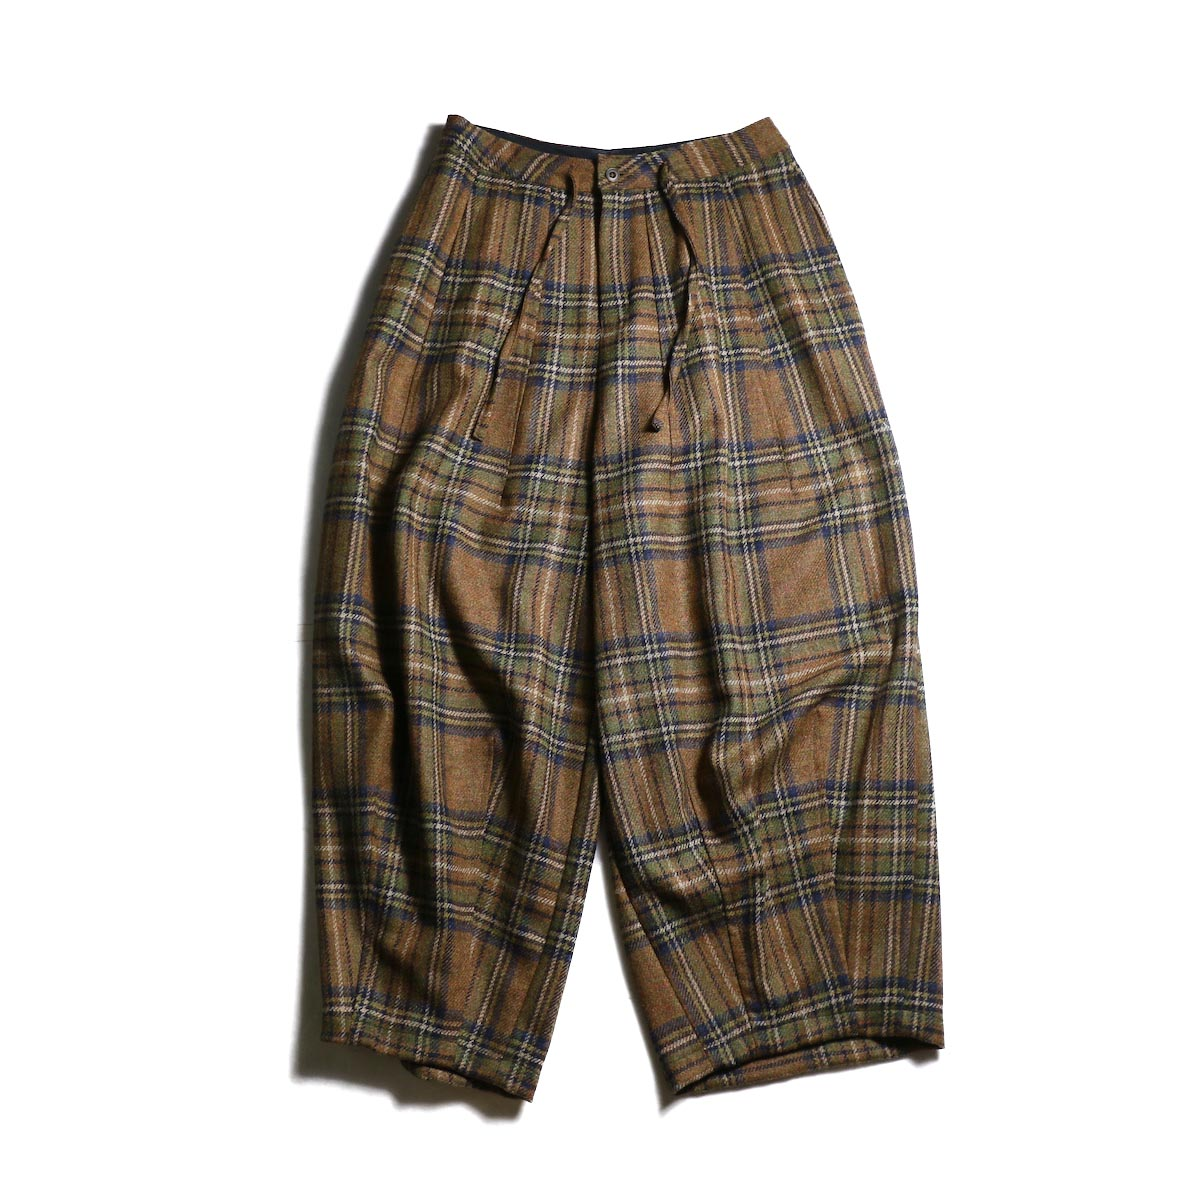 Needles / Darts Military Pant -Wool Plaid Tweed (Brown)